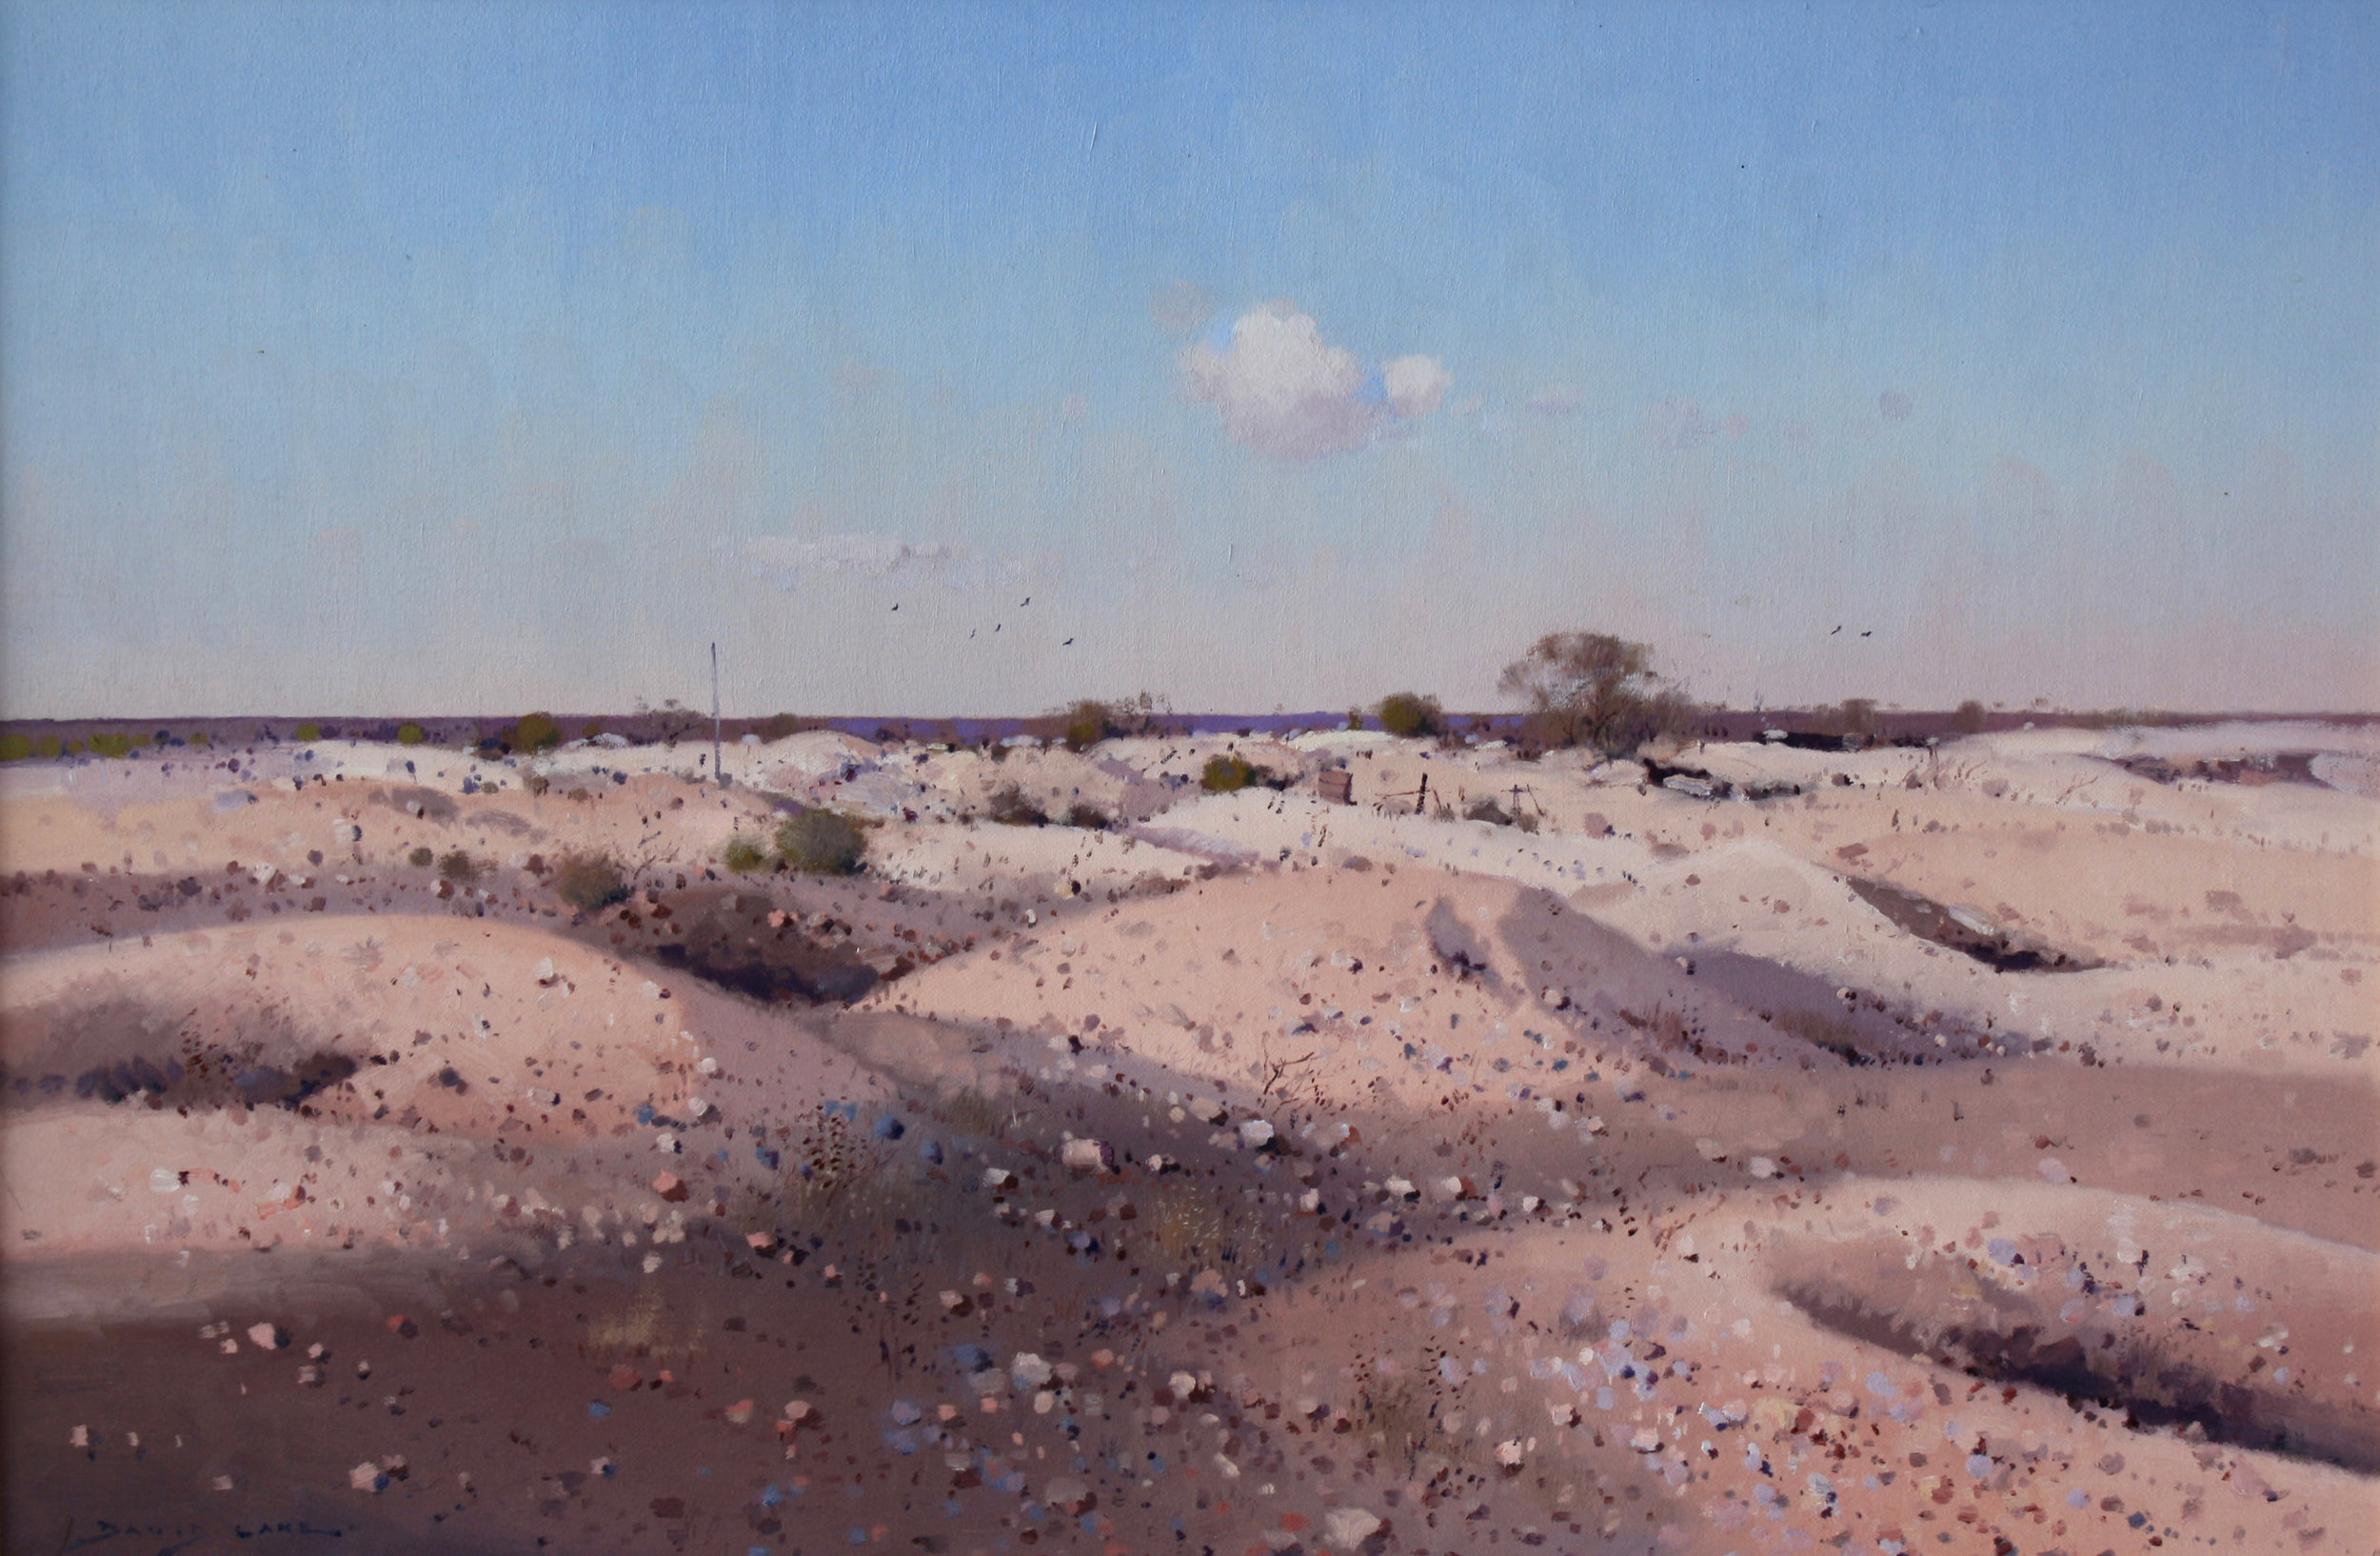 David LakeThe Diggings - White Cliffs 51 x 76cm.jpg